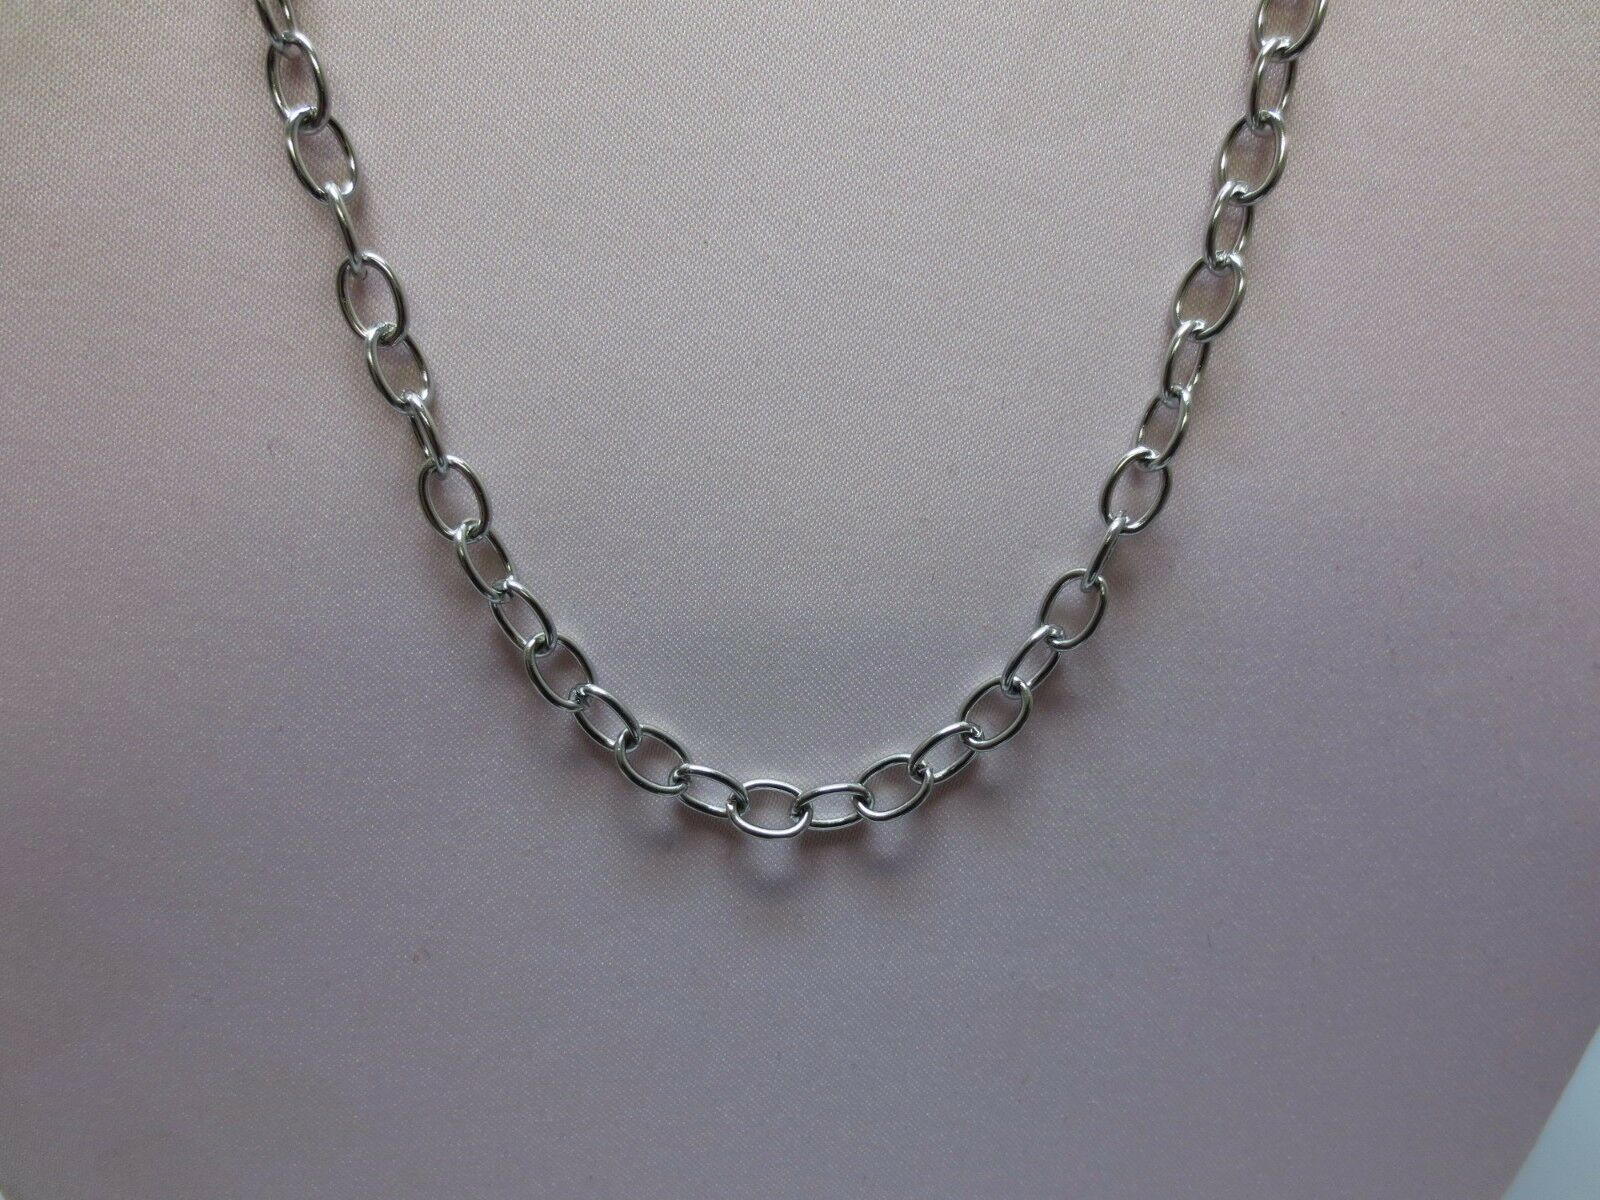 Stainless Steel Chain Silver Tone Link Cable Chain with Lobster Clasp APPR 26in